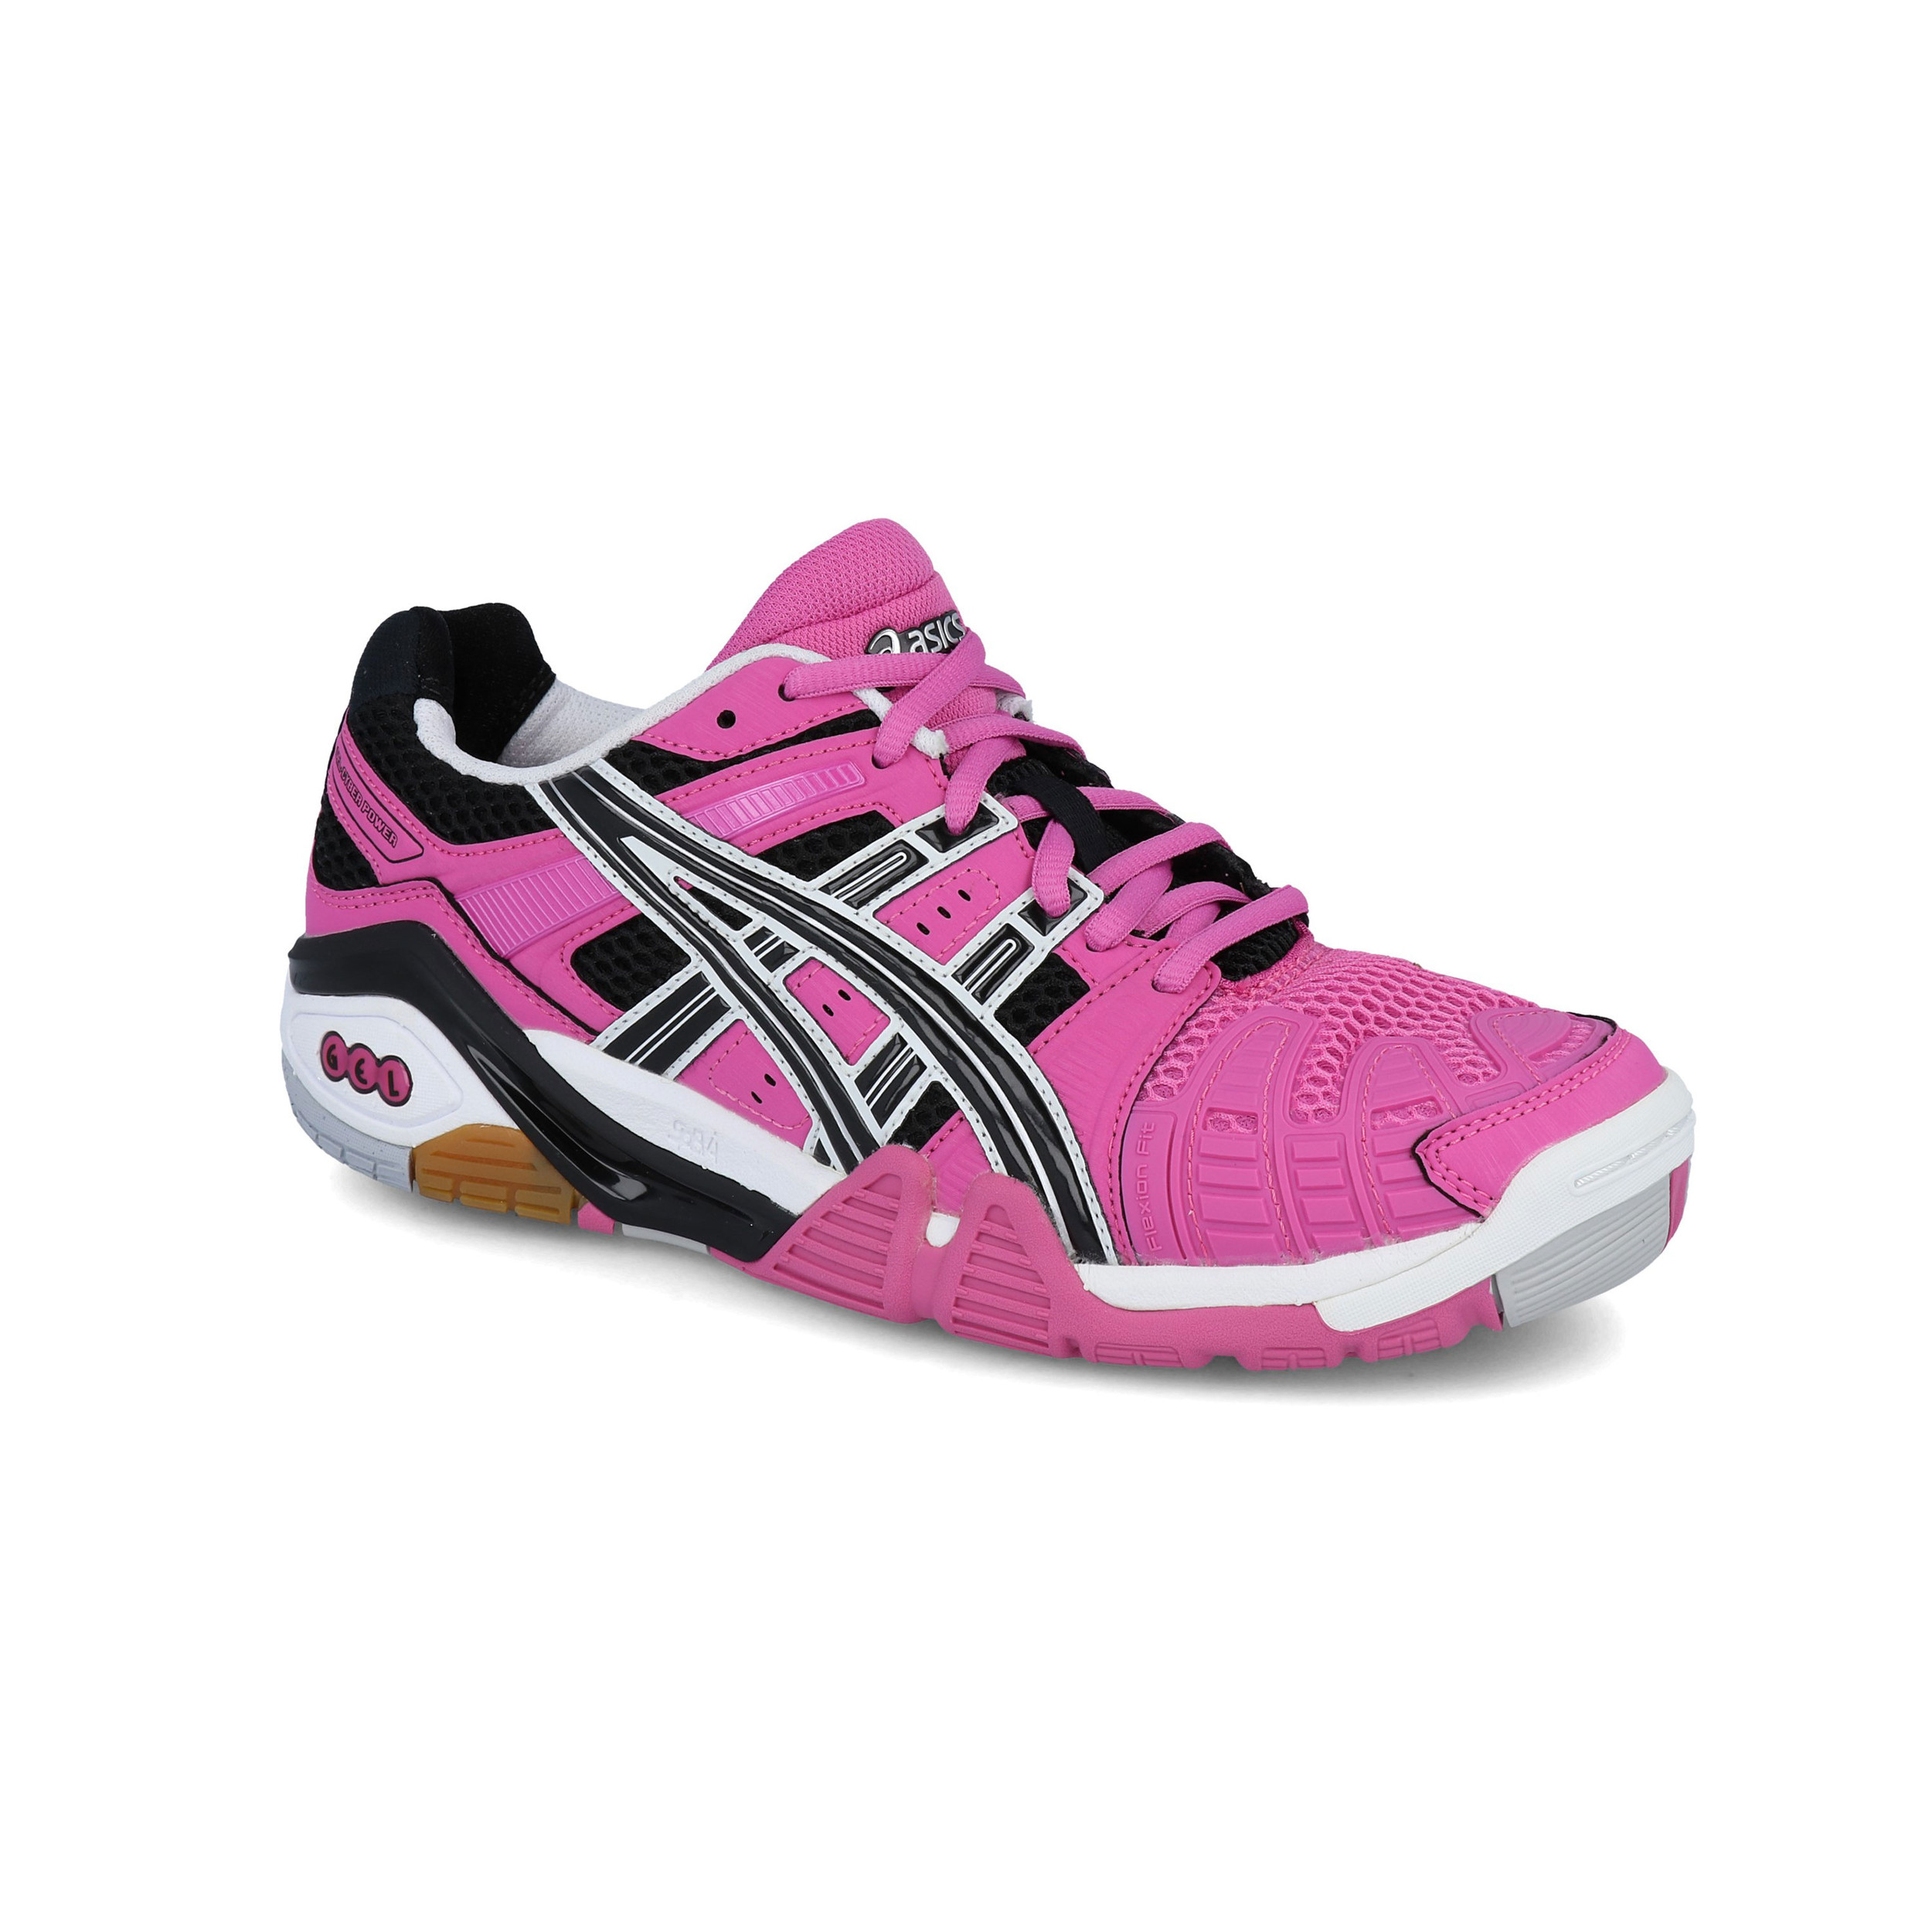 d21a18aa80d9 The multi-contact edge around the base of the shoe helps with durability